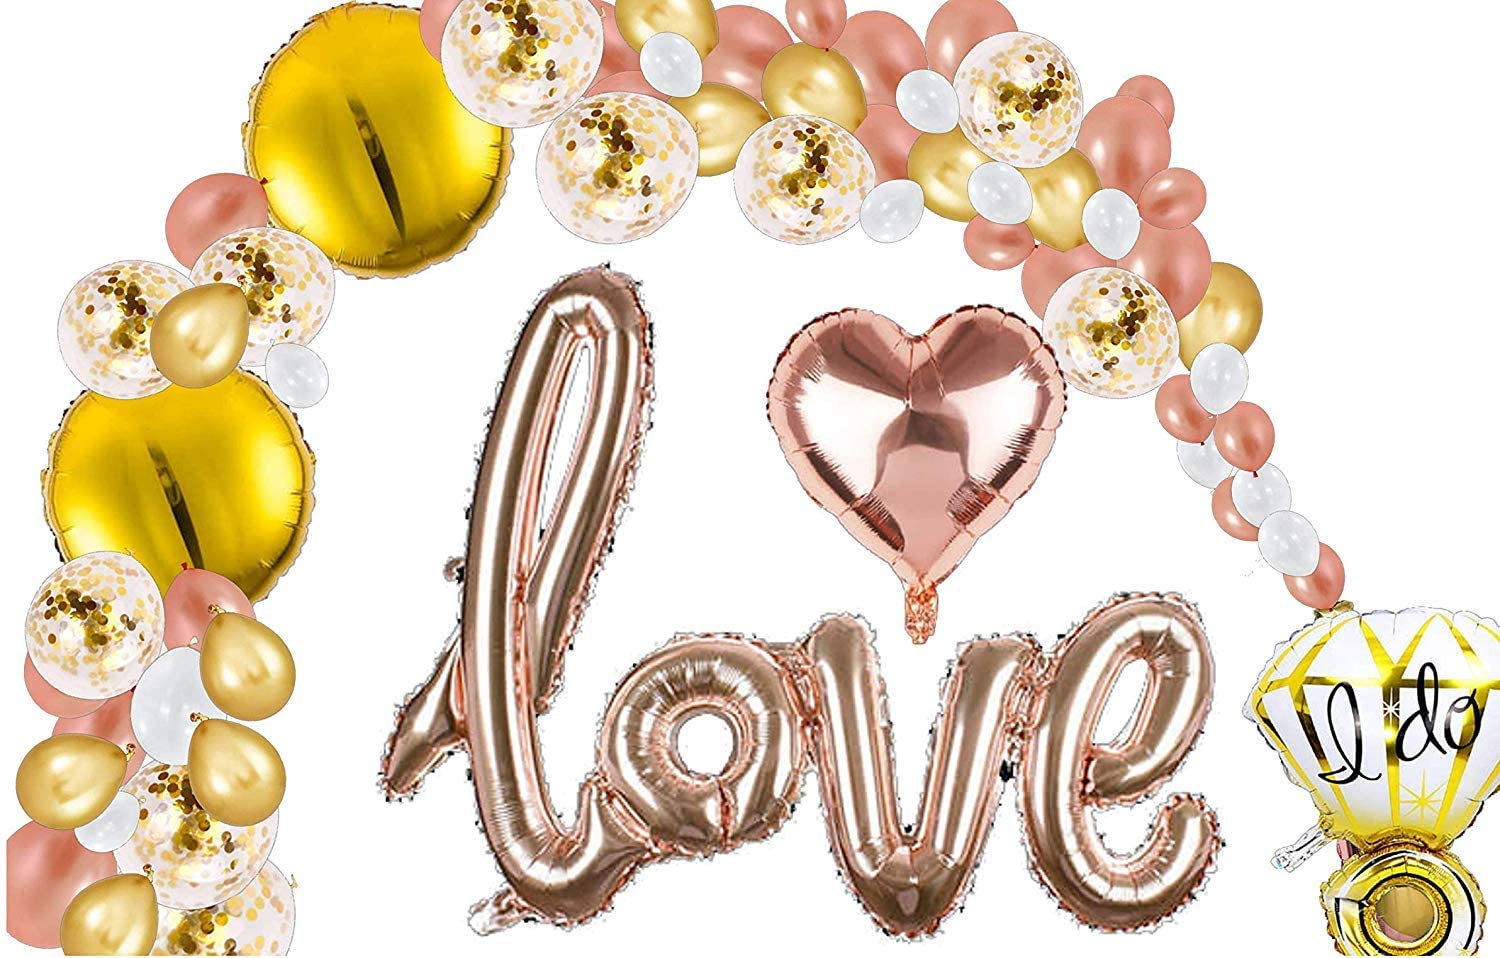 Bachelorette Party Decorations I 151 Rose Gold Bridal Shower Parties Balloons Garland Kits | Confetti Balloon Arch, Foil Love, Heart, White, Hand Pump, Decor I Wedding